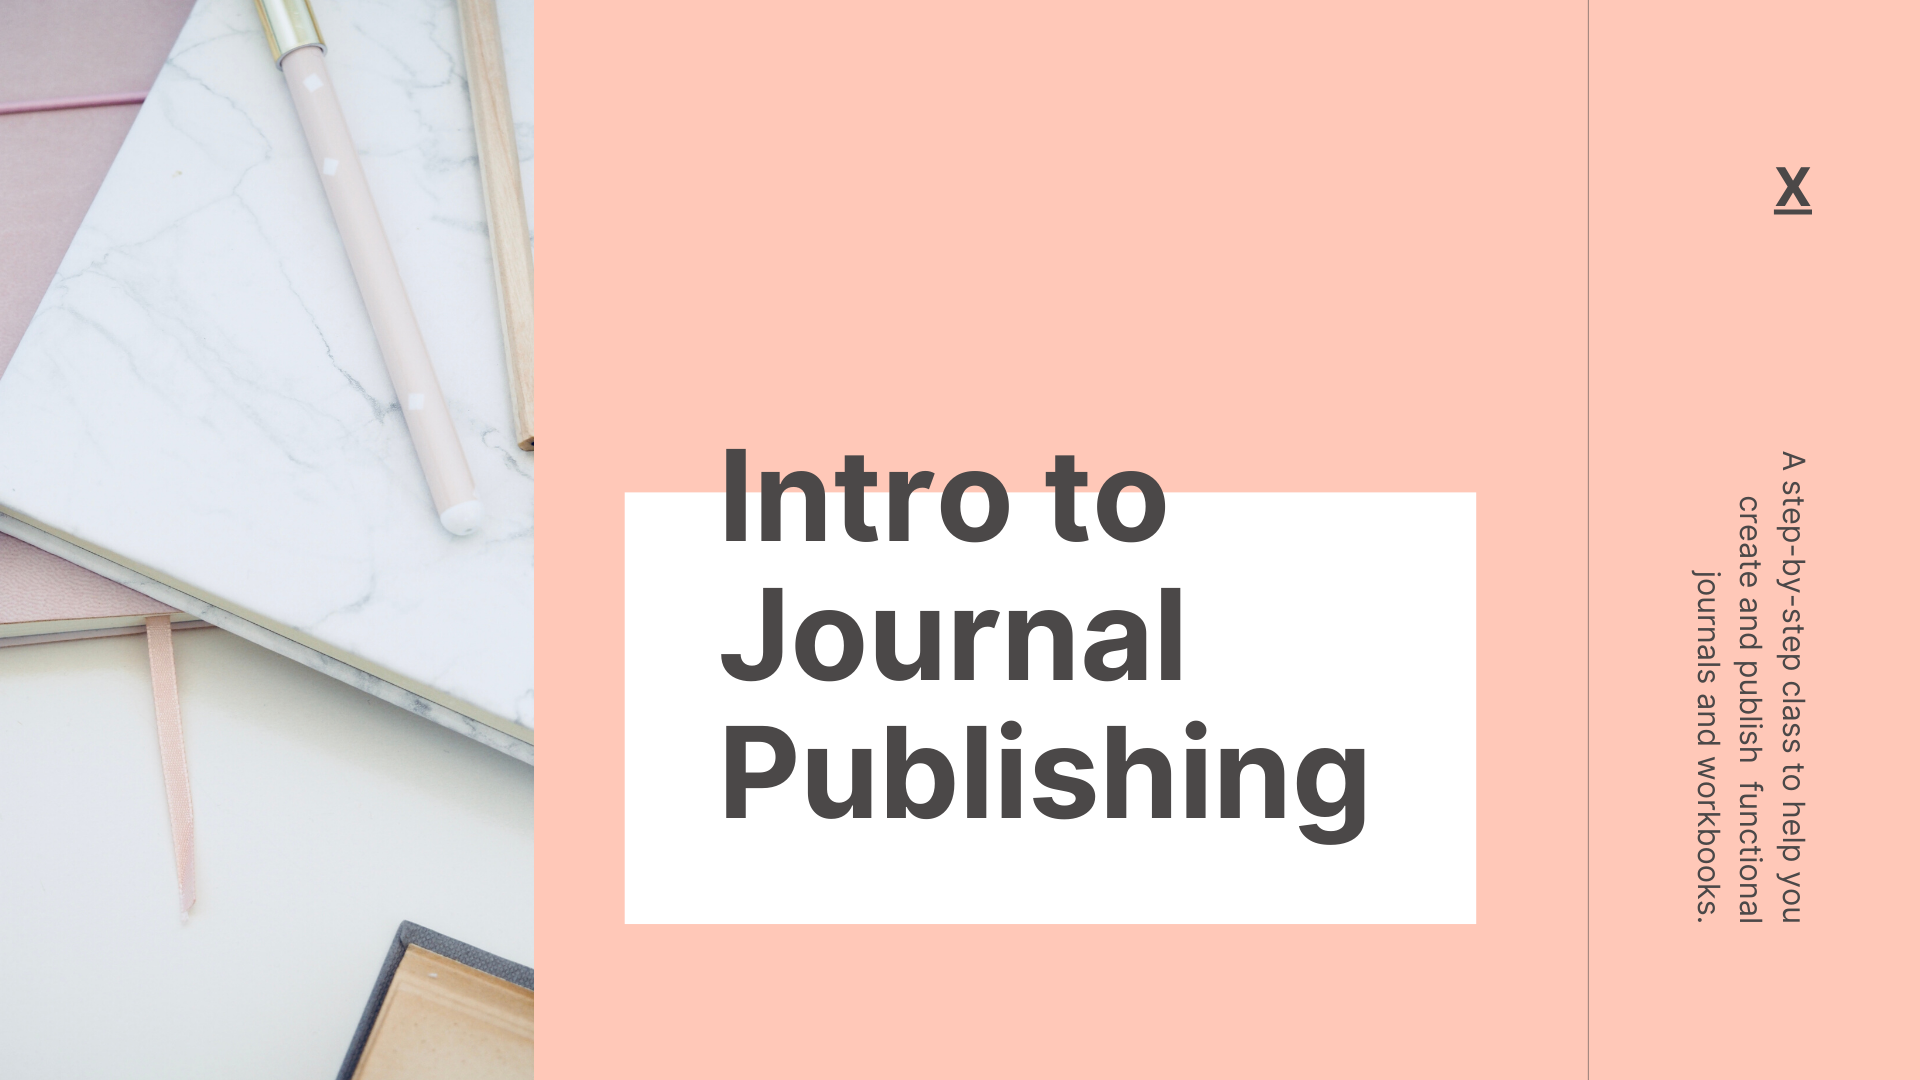 Intro to Journal Publishing